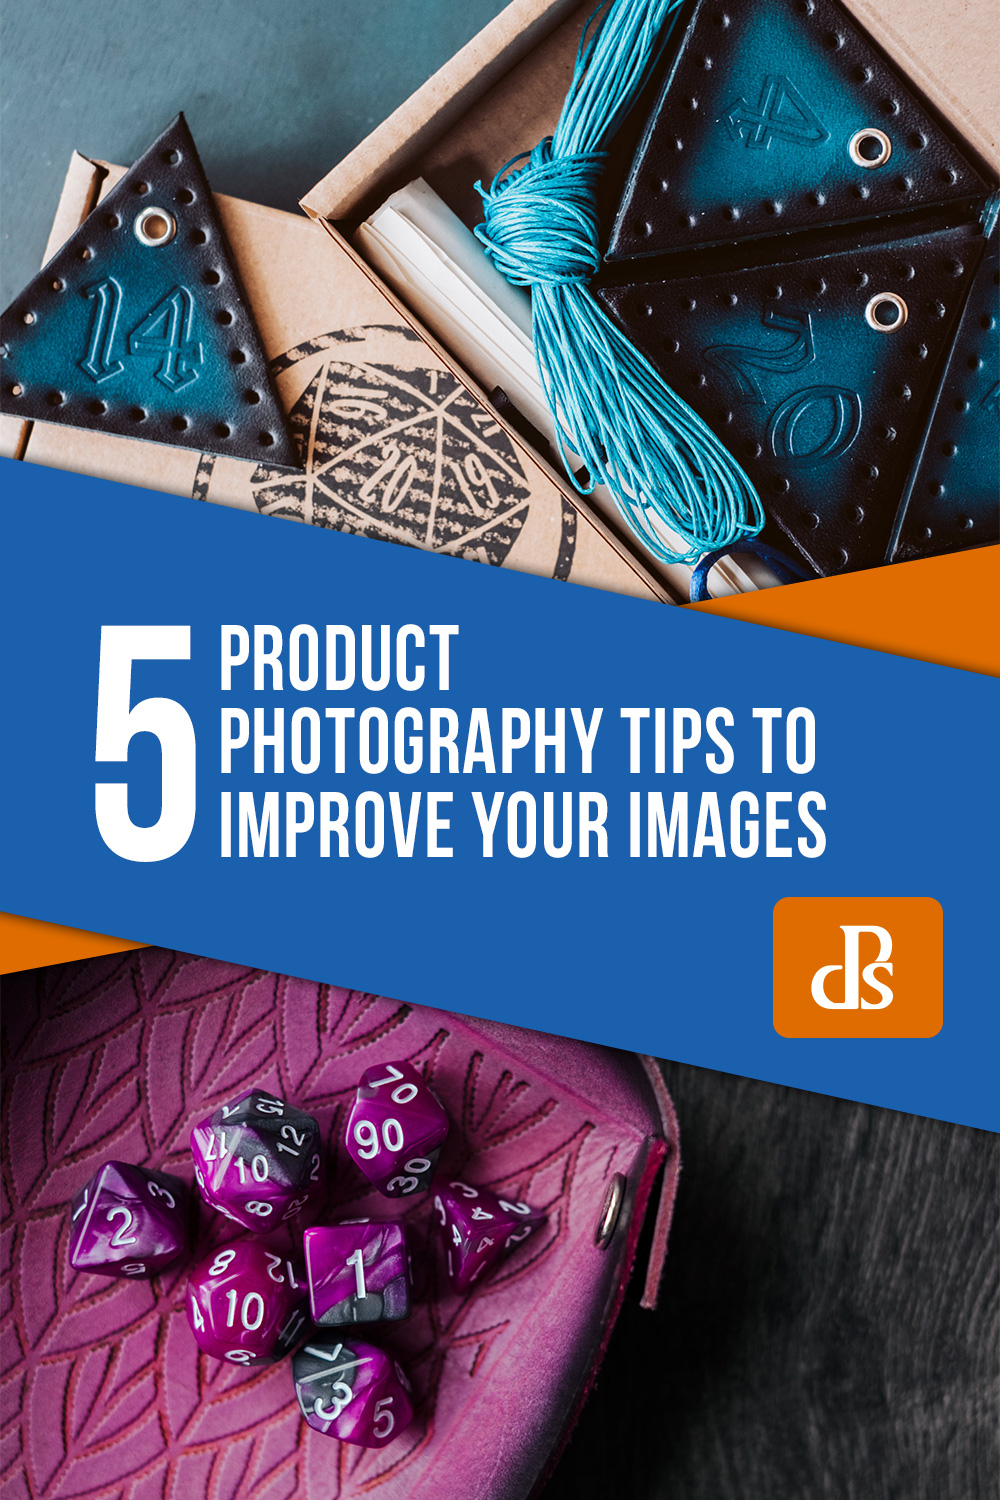 5 Product Photography Tips to Improve Your Images